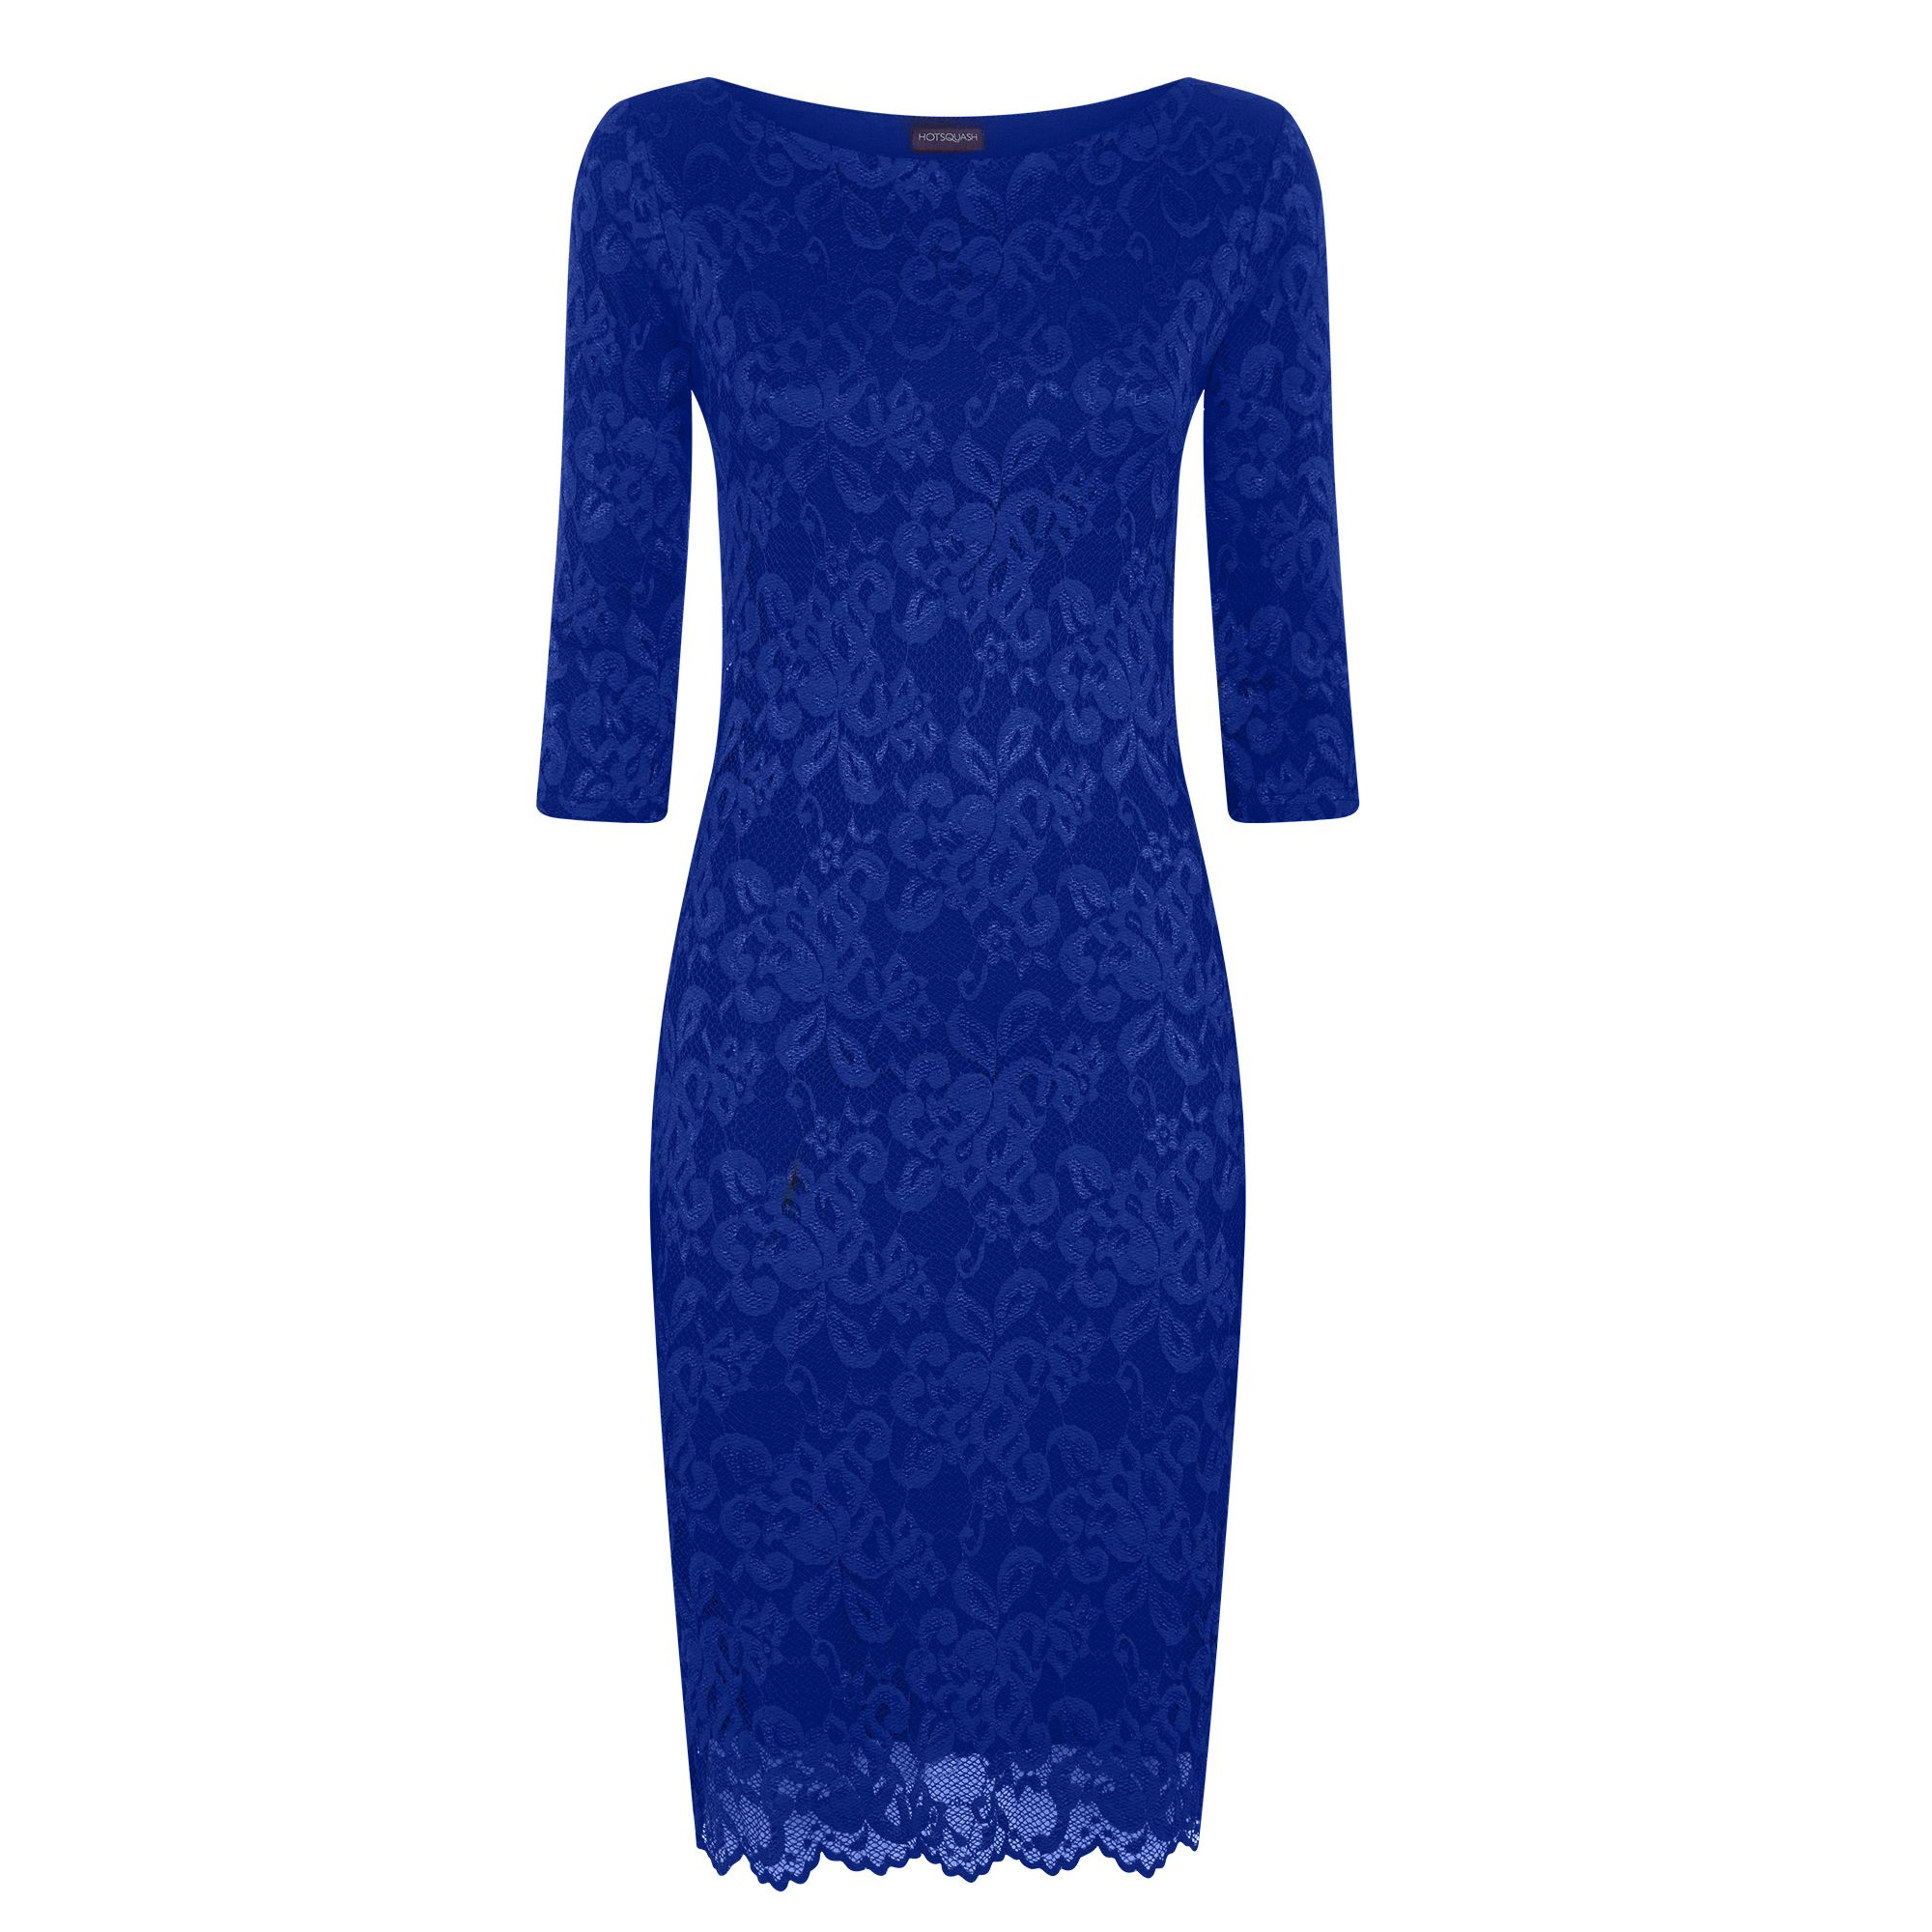 HotSquash Long Sleeved Lace Dress With Thinheat, Midnight Blue